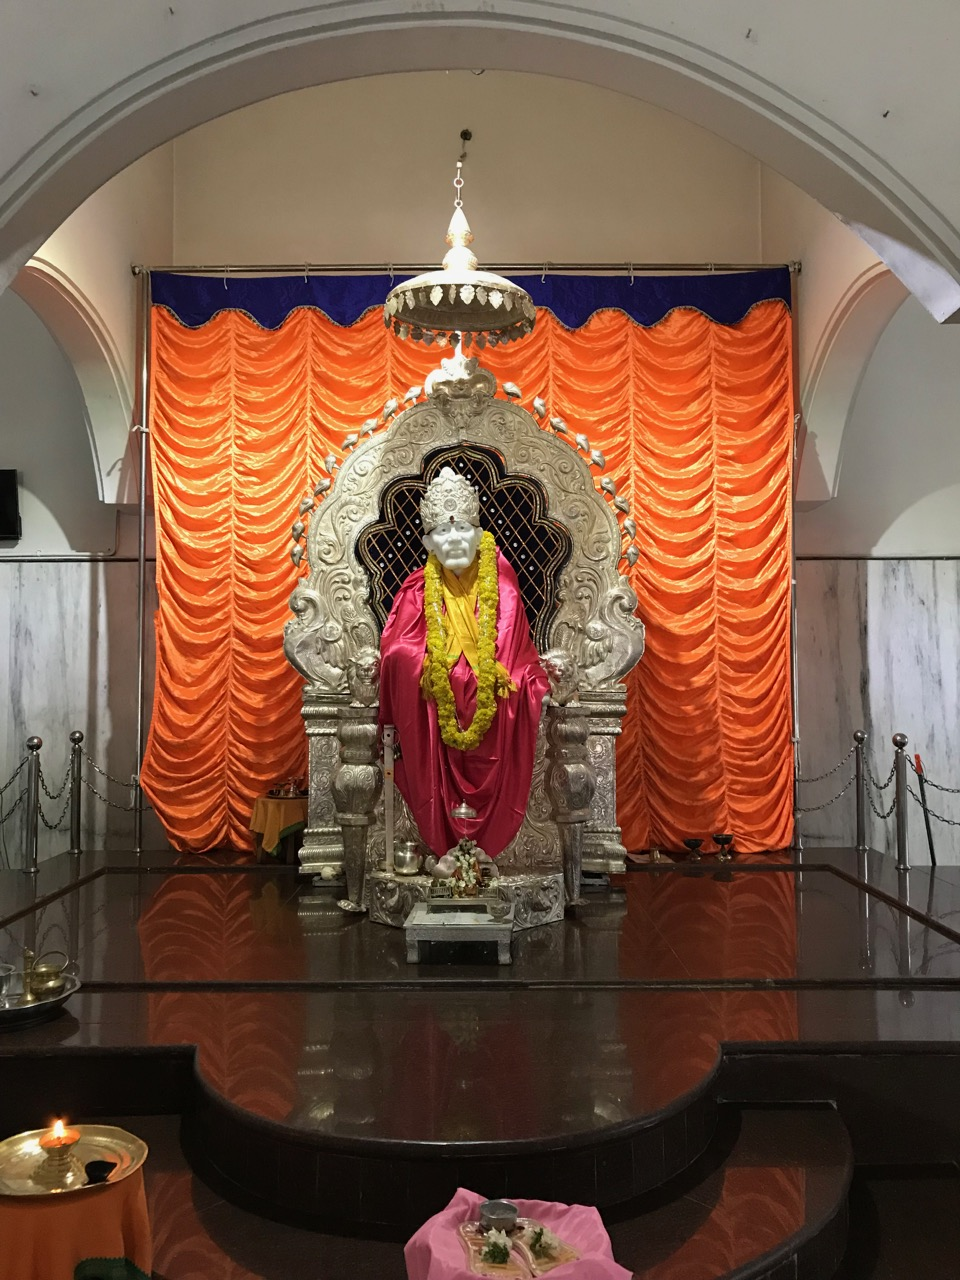 The Hours My Memoir October 2017 Posted By Srihari Rao On Thursday January 6 2011 5comments I Walked To Ventakeshwara Swamy Temple That Was Closed So Decided Walk Sai Bhaba Empty And Thus Peaceful